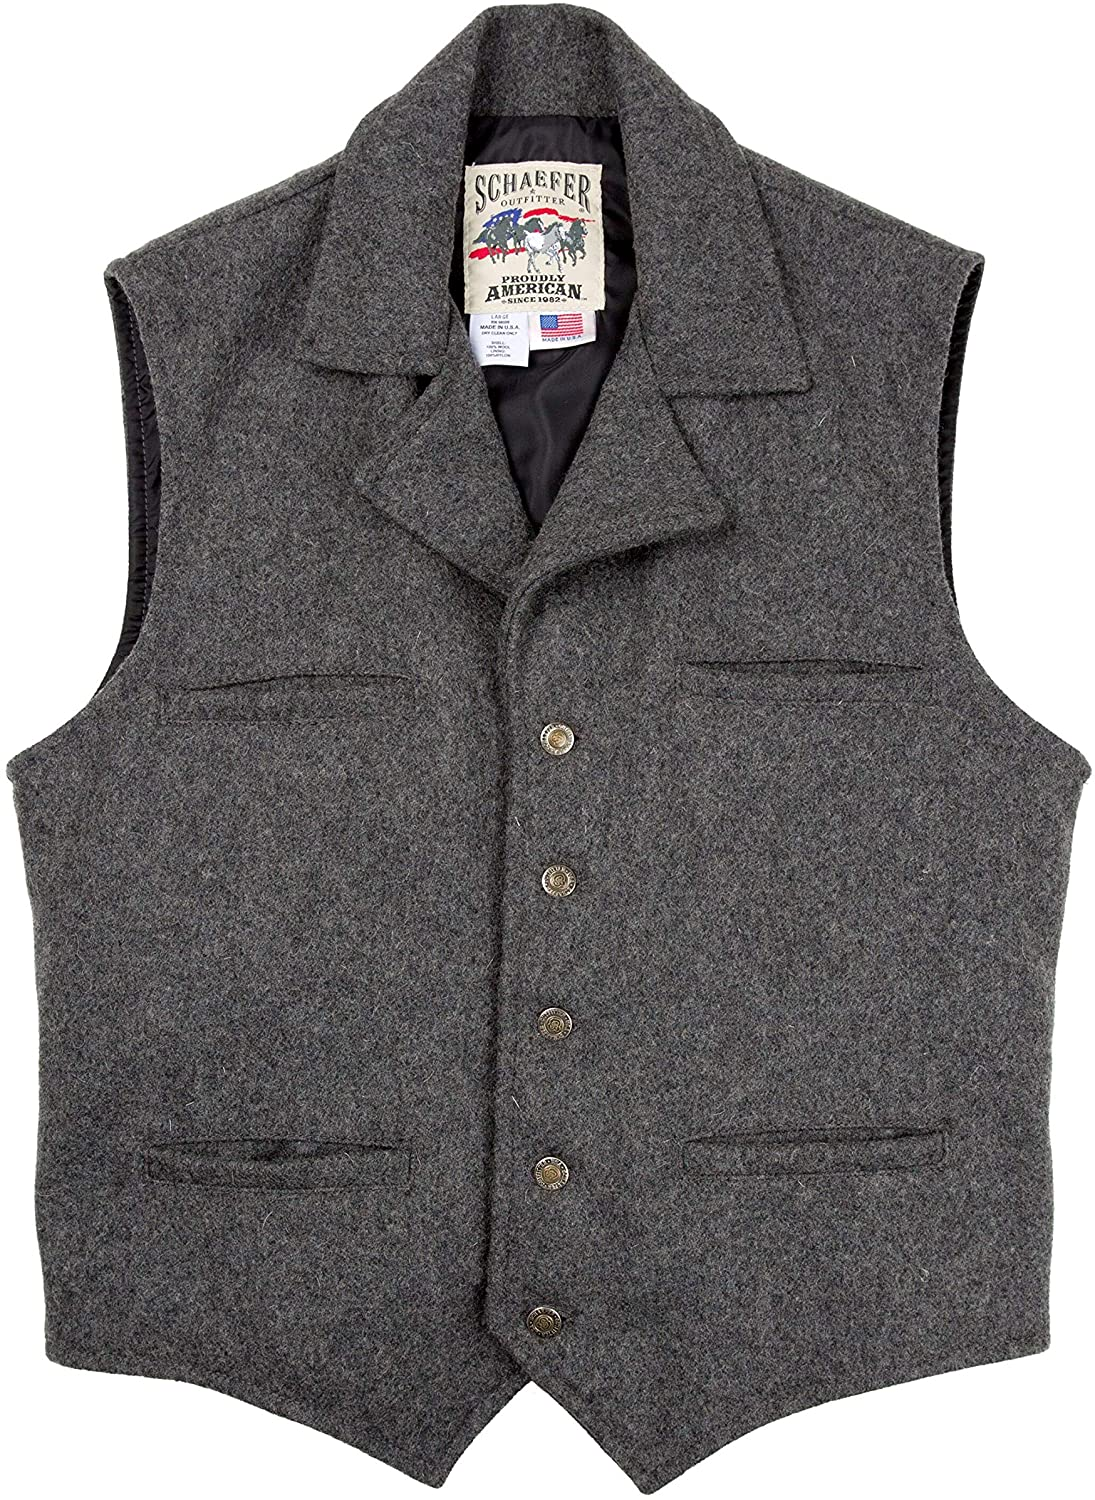 1920s Style Mens Vests Schaefer Outfitters Vest for Men Classic Fitted Ranchwear Wool Vest 805 Cattle Baron Vest $140.00 AT vintagedancer.com